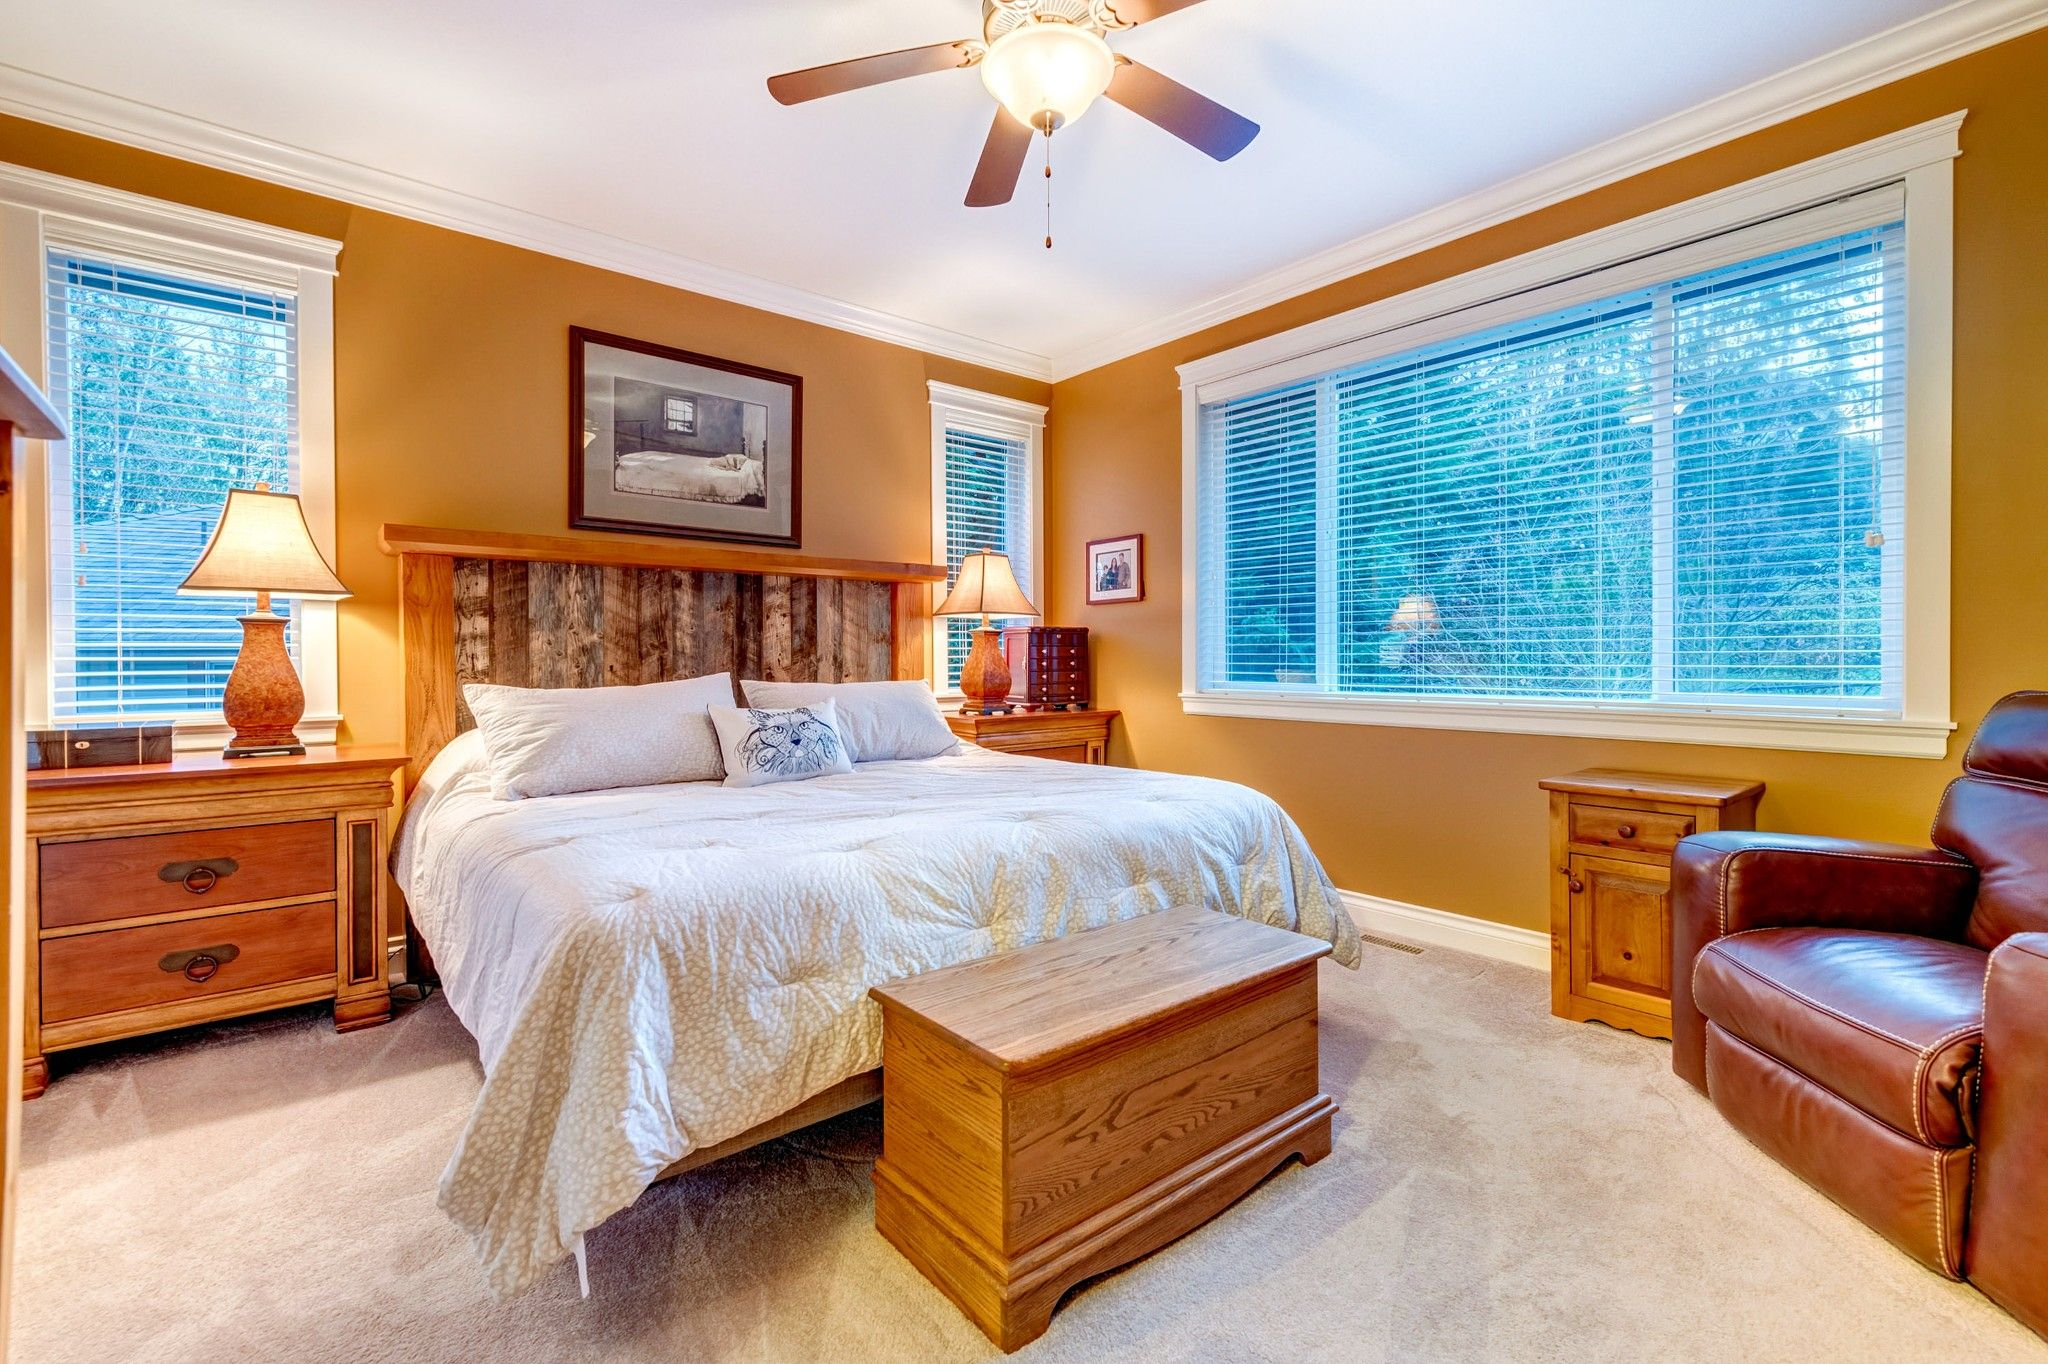 Photo 11: Photos: 16 13210 SHOESMITH CRESCENT in Maple Ridge: Silver Valley House for sale : MLS®# R2448043